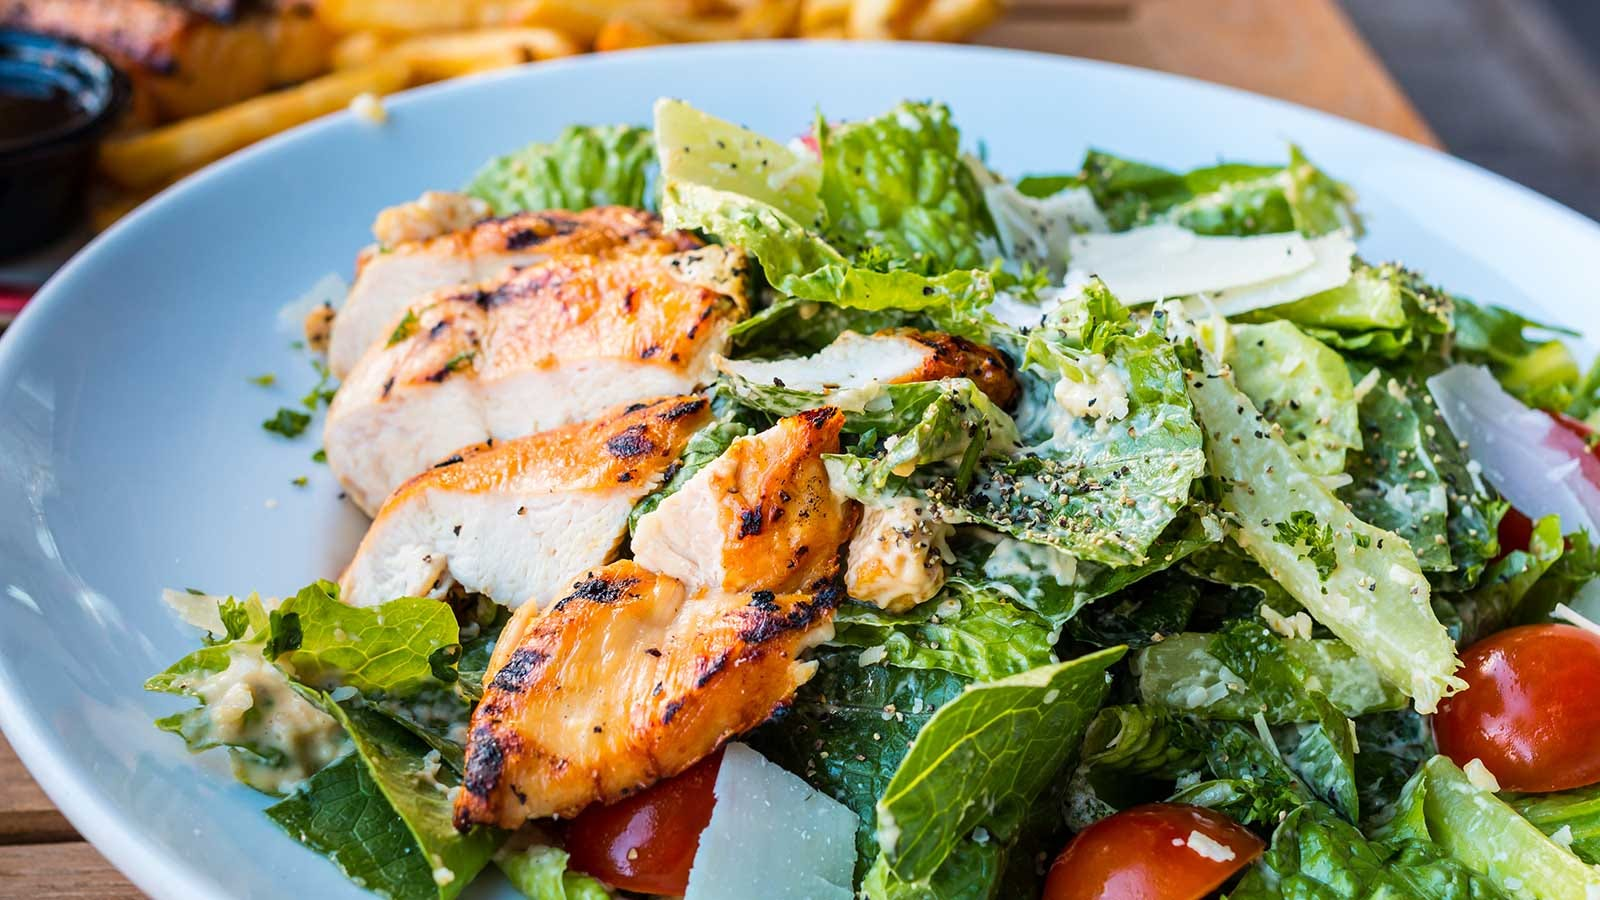 A well tossed salad with the greens evenly coated with fresh salad dressing.